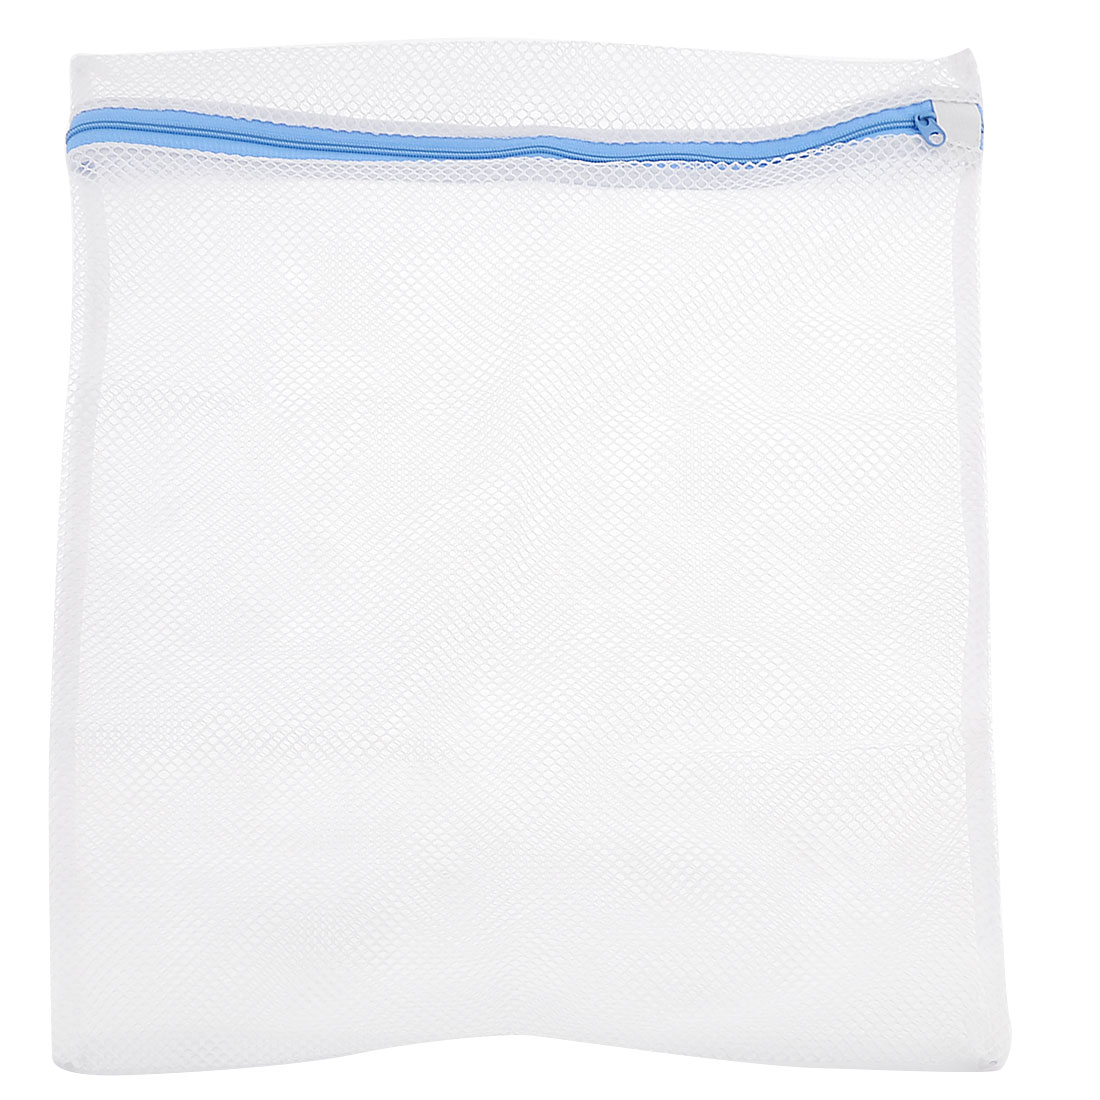 49cm x 37cm White Blue Meshy Silk Bra Clothes Washing Zippered Bag Wash Holder